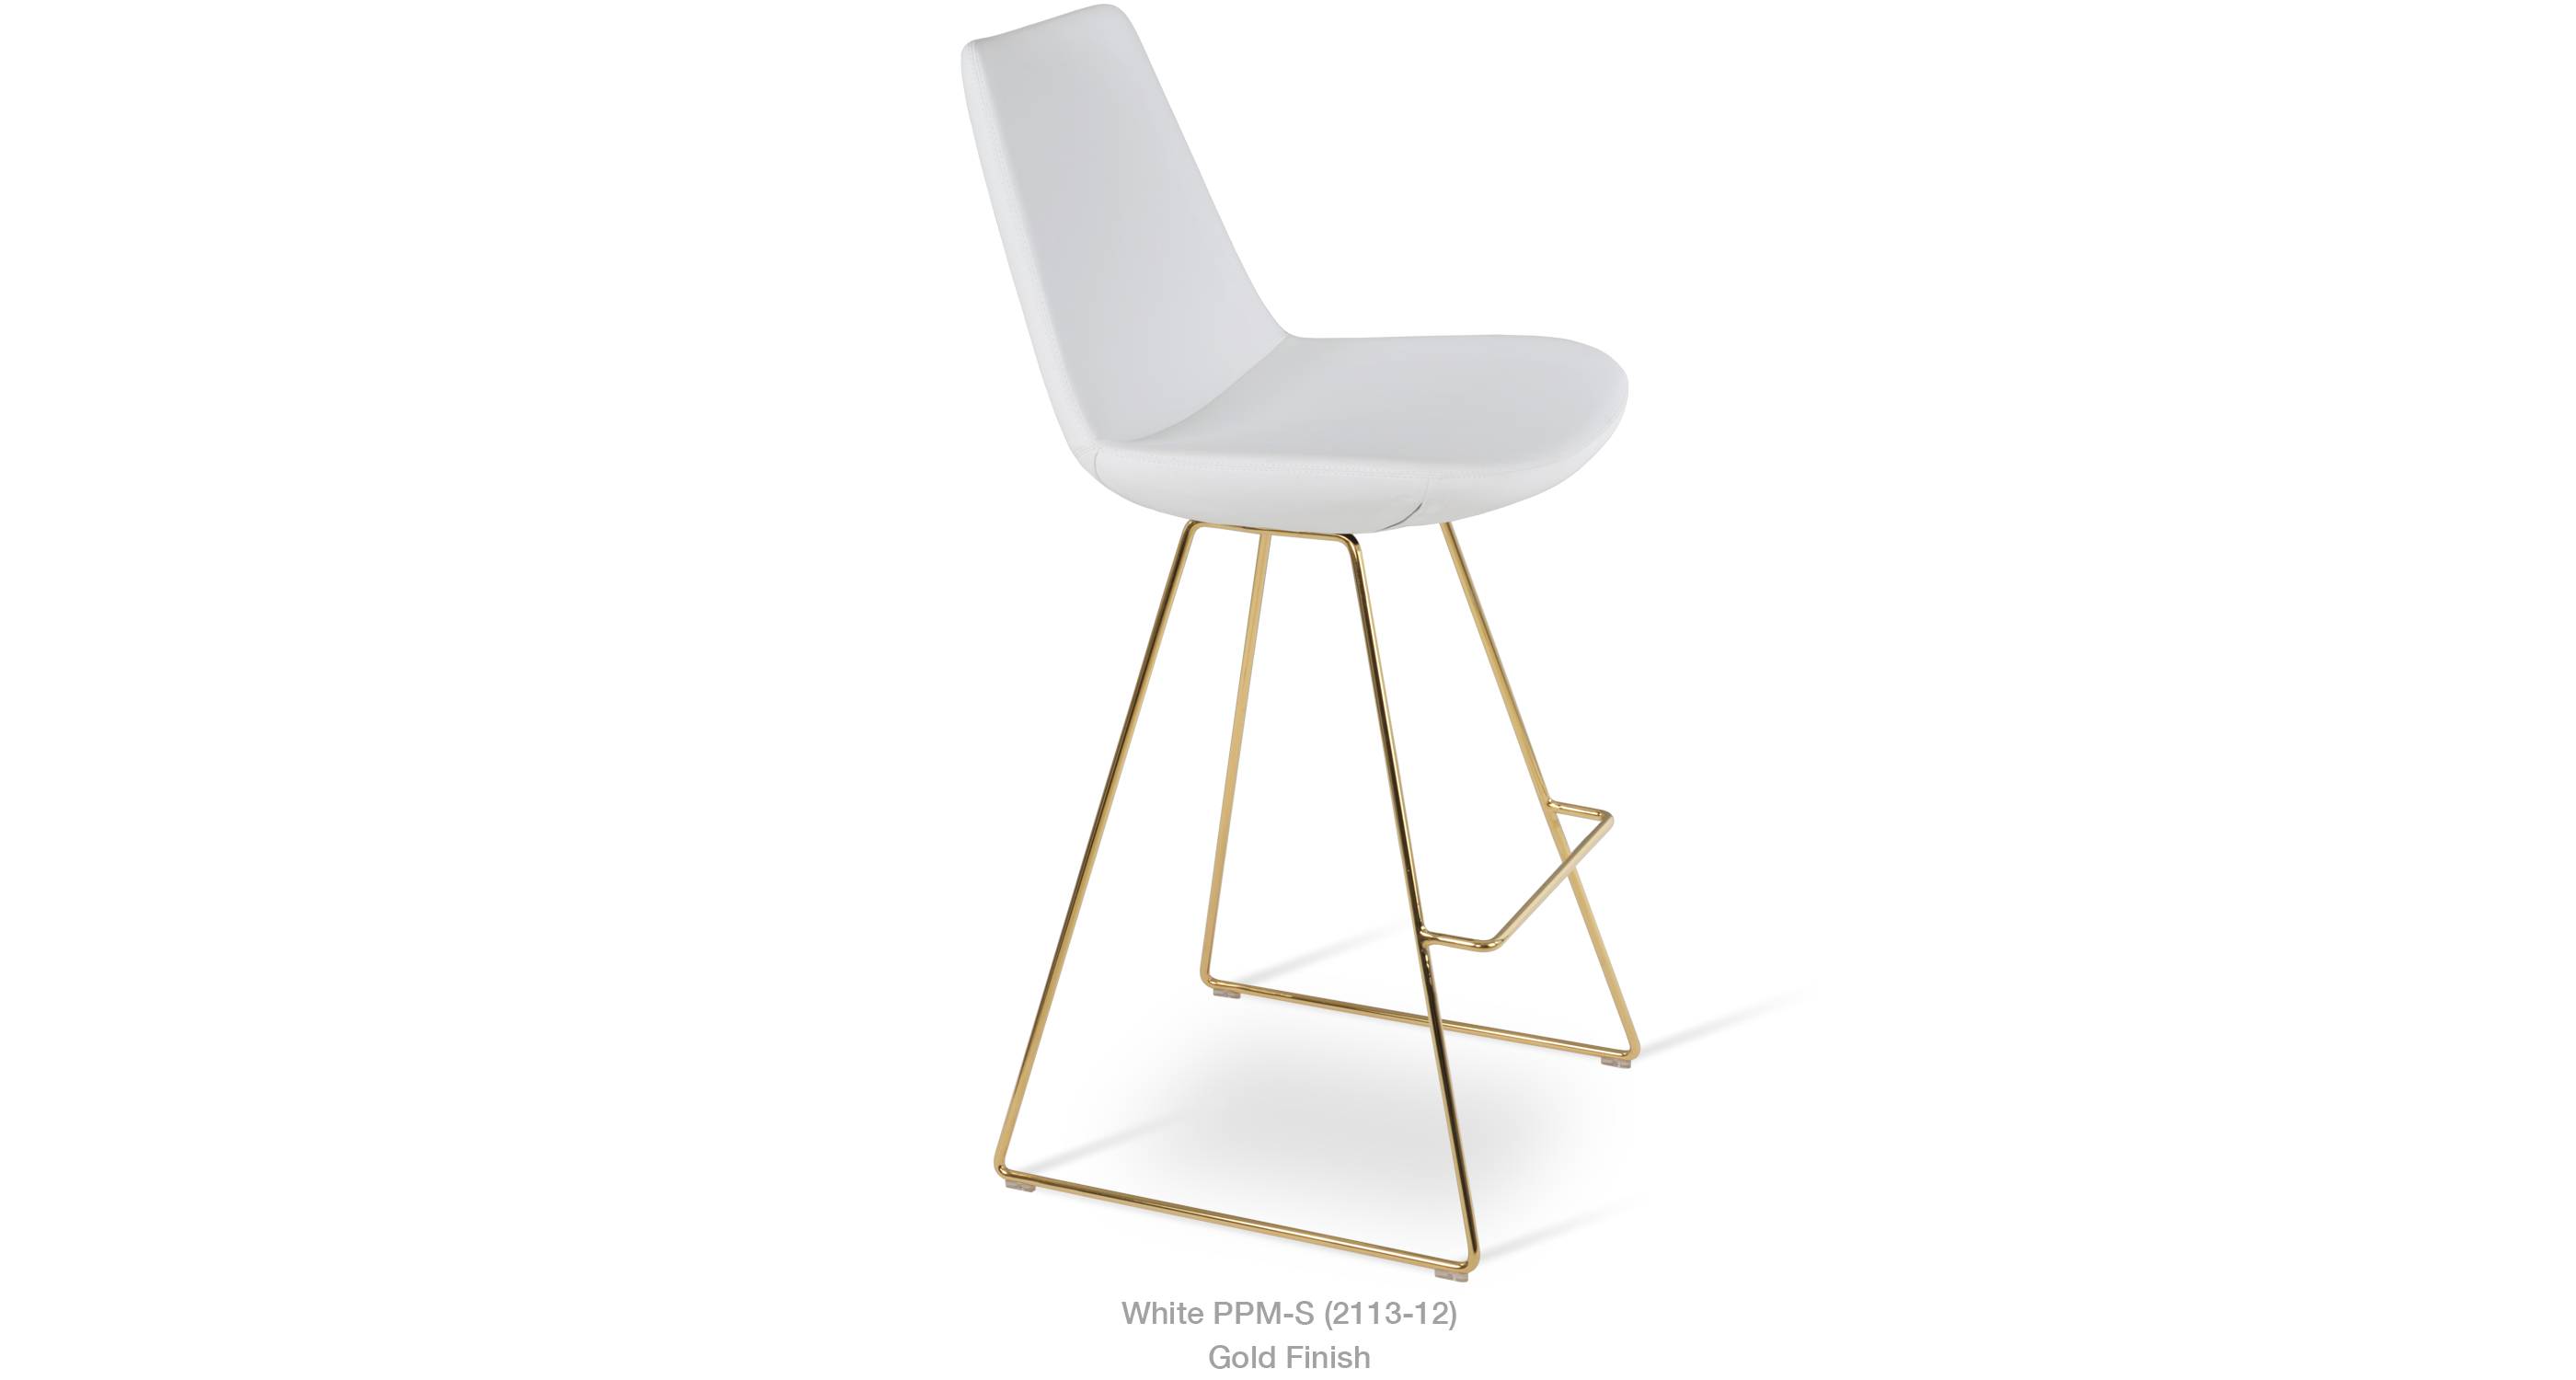 2020 02 20 Eiffel Wire Stool White Ppm Gold